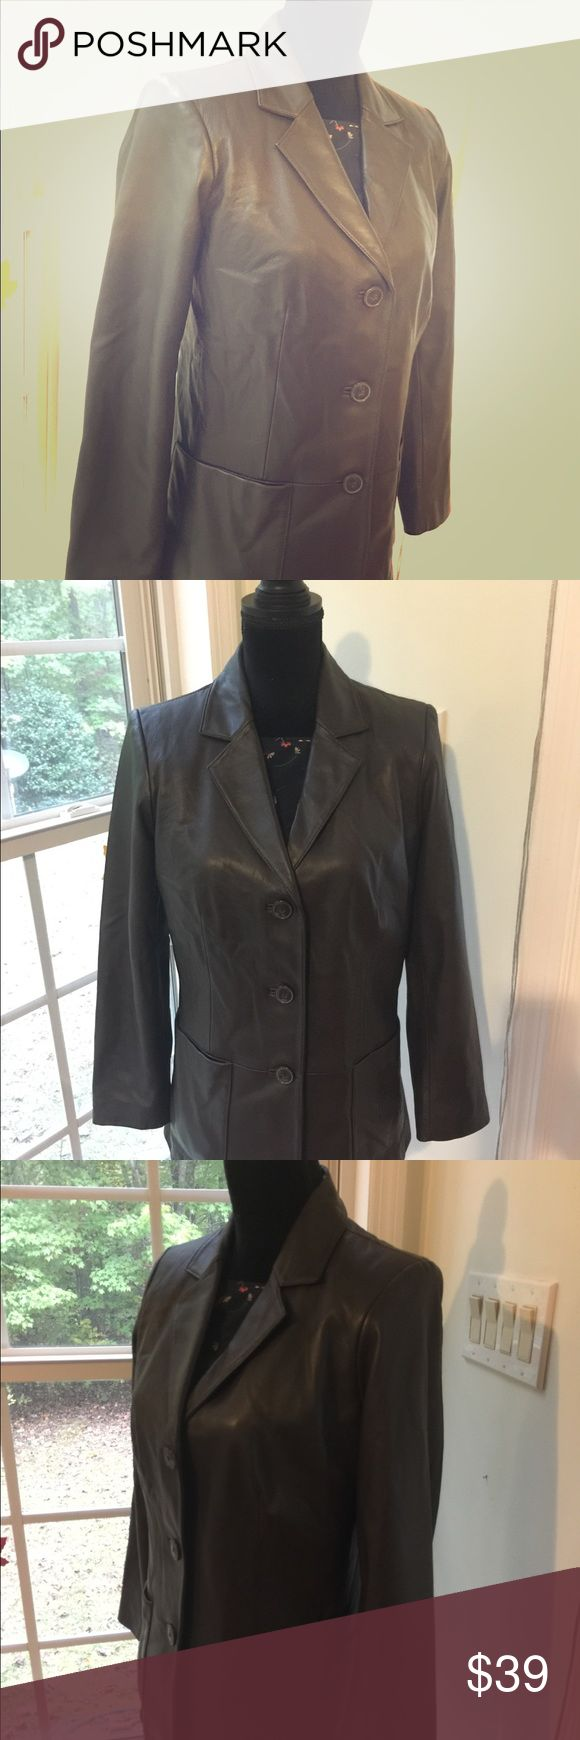 """Lambskin Leather Jacket Preston & York Small This brown genuine lambskin jacket looks very professional.  There are two large pockets in the front and a collar.  The jacket has a slight waist which makes it flattering.  The leather is VERY soft! The size is small but it is a little roomy for a small, enough for a sweater underneath. This jacket is preowned but in excellent condition with no marks or flaws.  Chest: 18 1/4"""" Shoulder point to shoulder point: 16 1/4"""" Sleeves: 23 1/2"""" Length: 29""""…"""